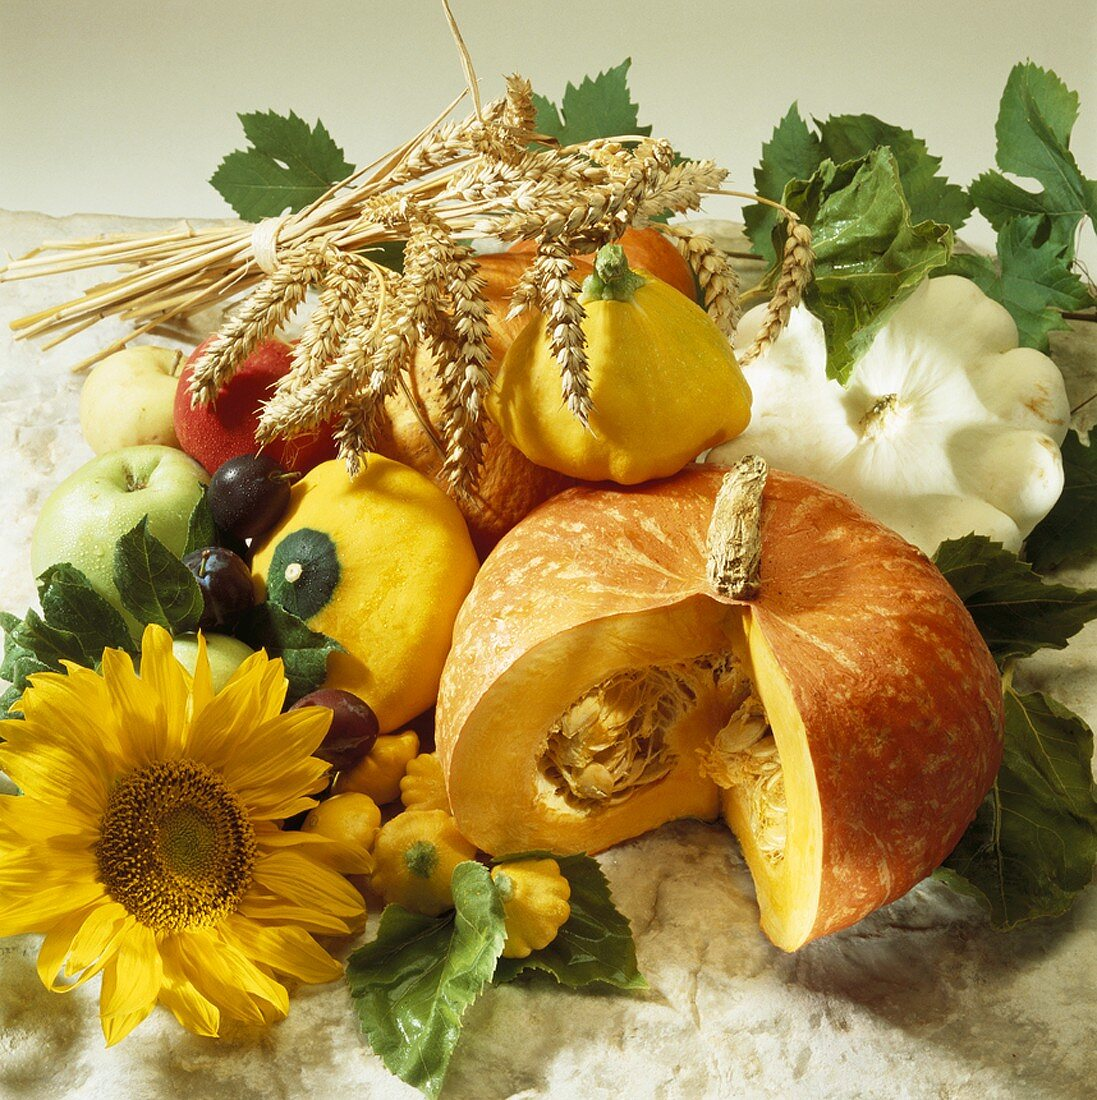 Autumn still life with squashes, pumpkins, fruit & cereals